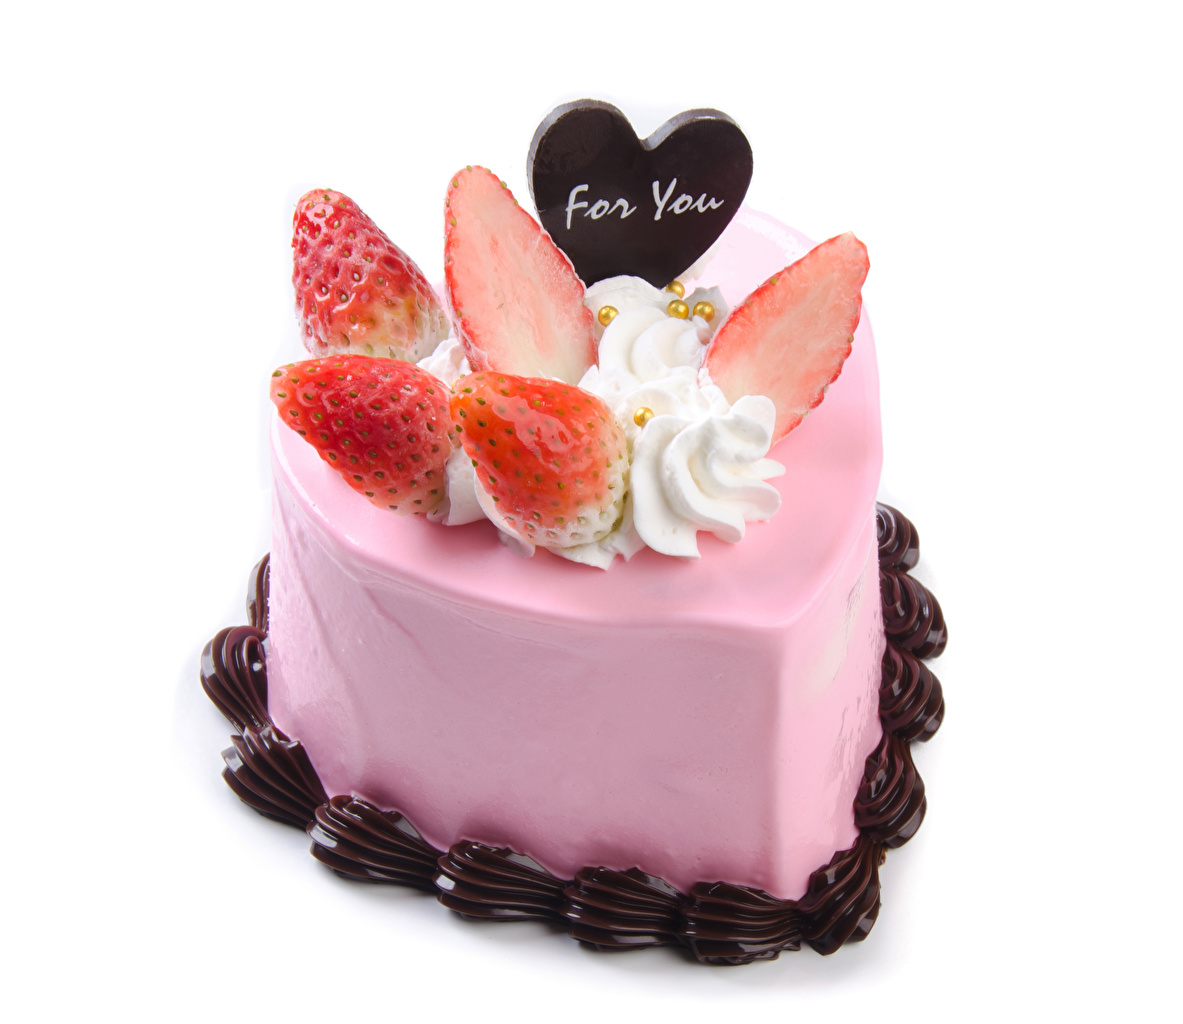 Images Valentine's Day English Heart Chocolate Cakes Strawberry Food Sweets Torte confectionery